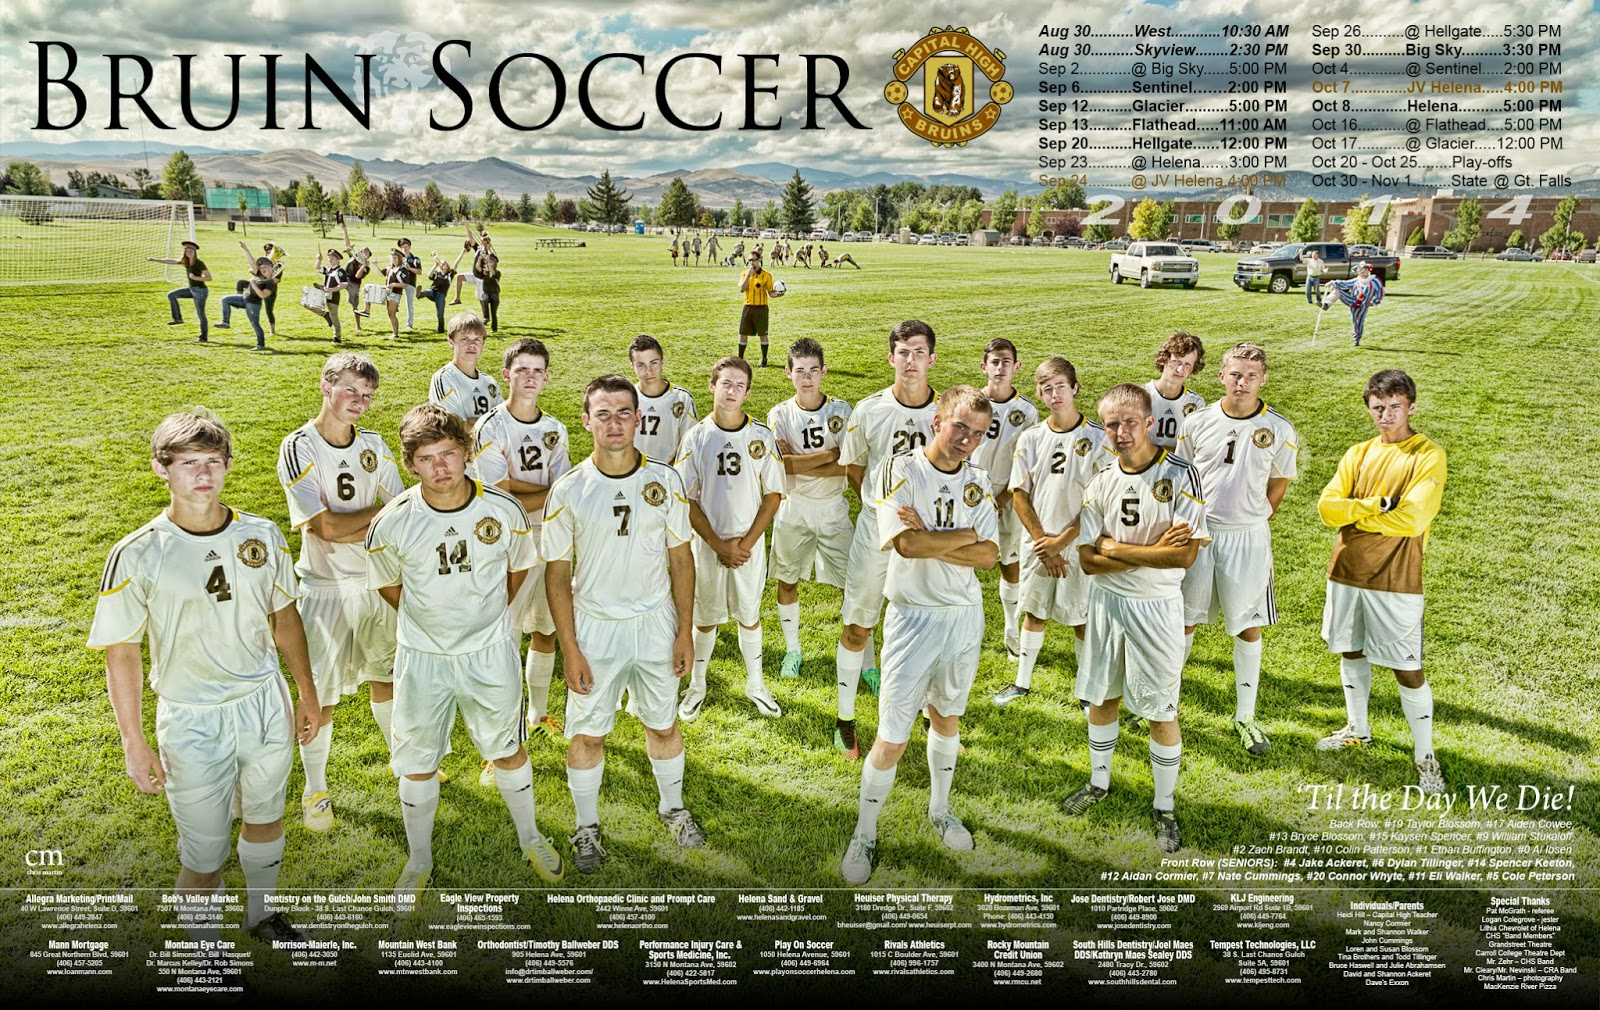 chris martin photography - soccer poster